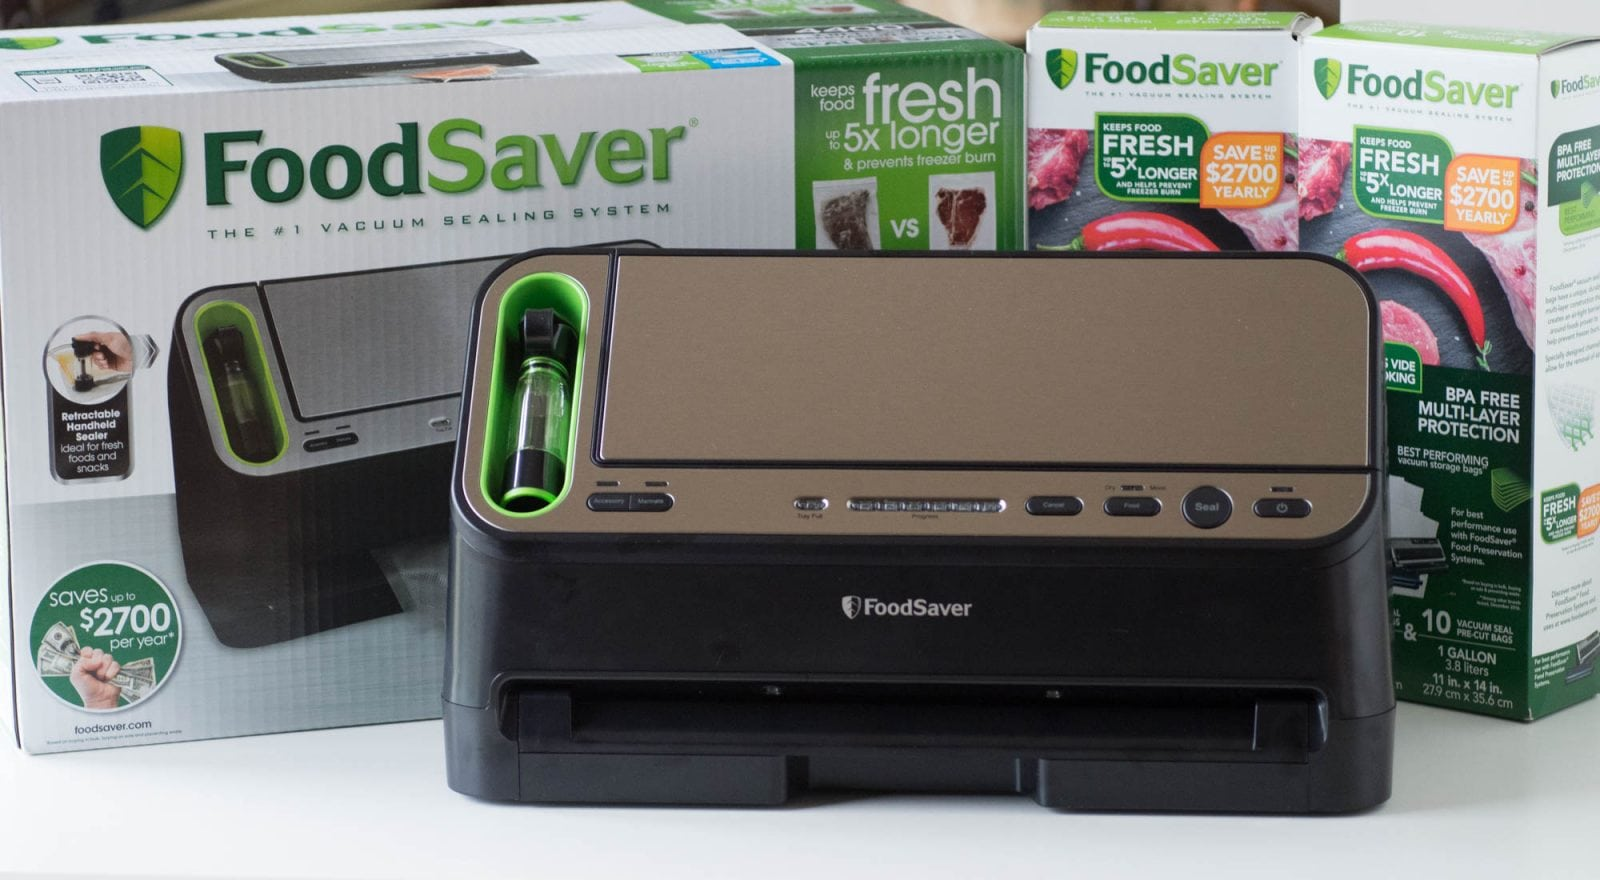 Foodsaver Vacuum System for Sous Vide cooking